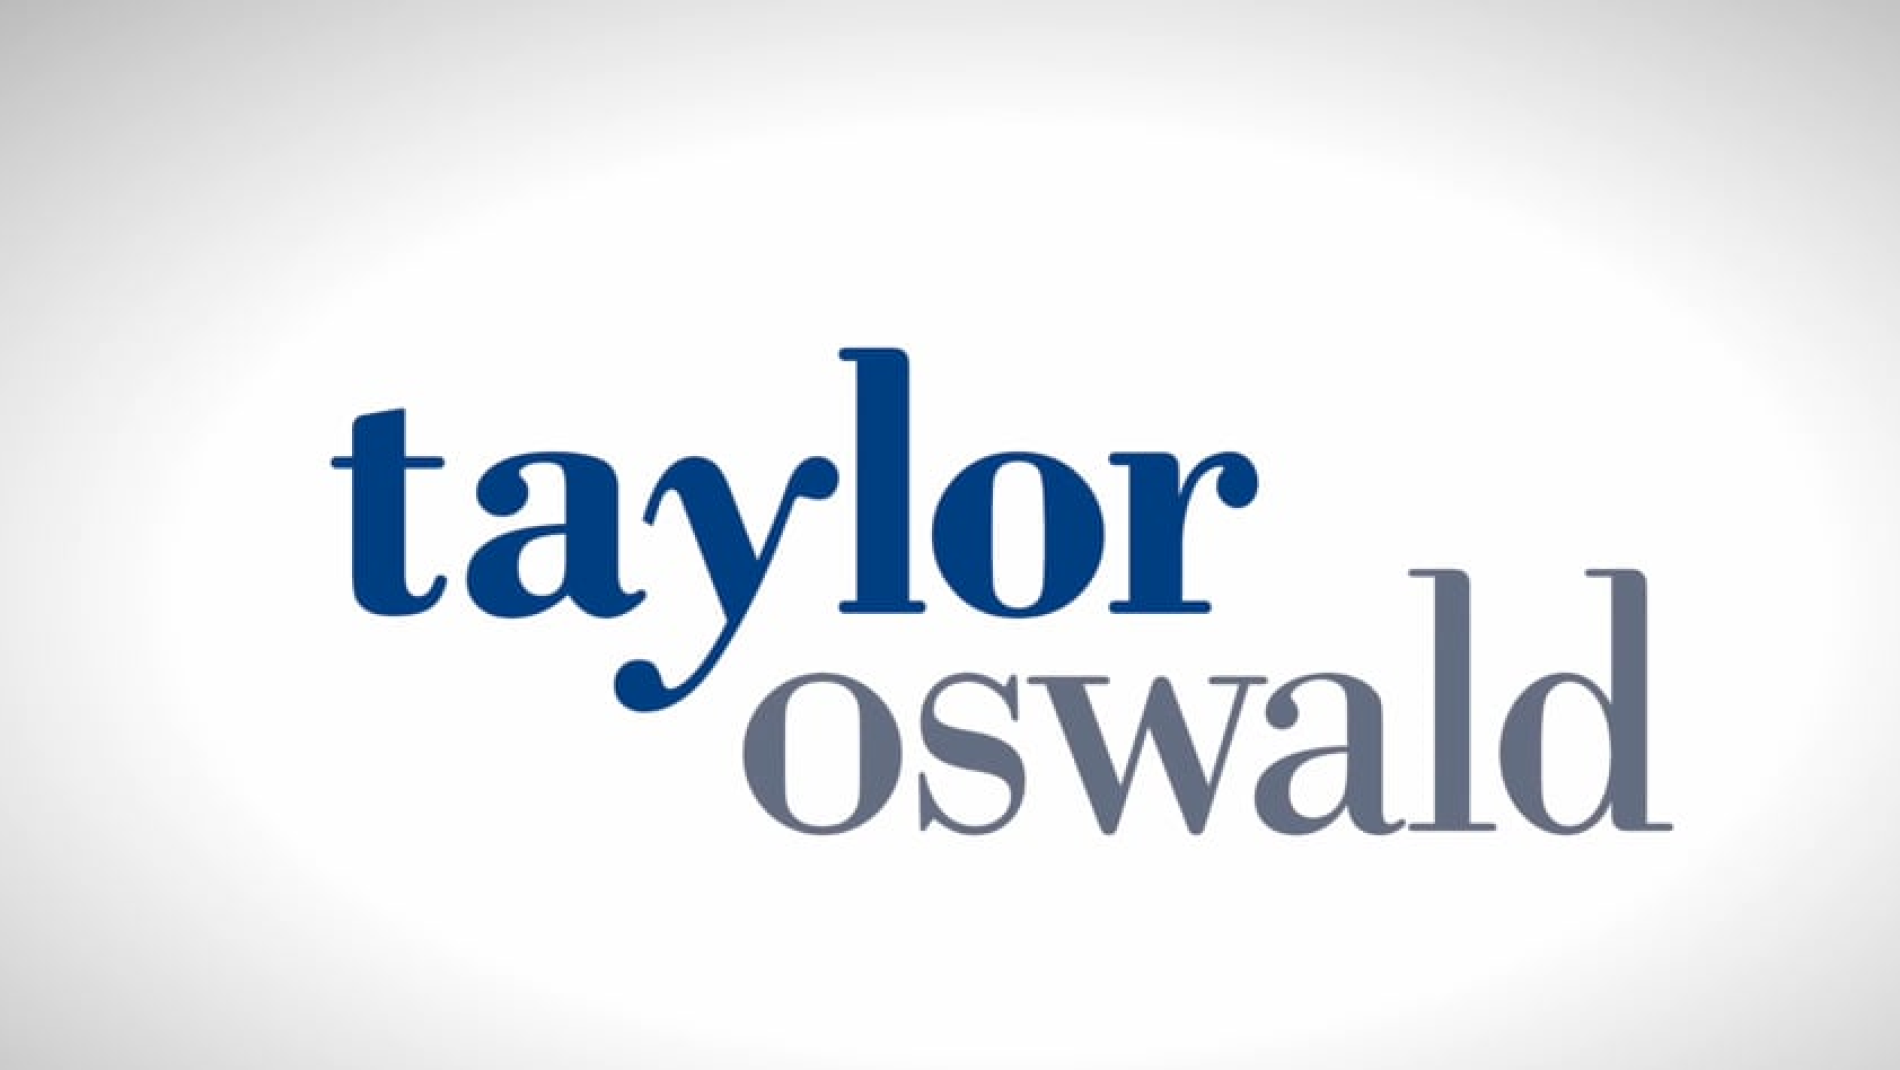 Get To Know Taylor Oswald